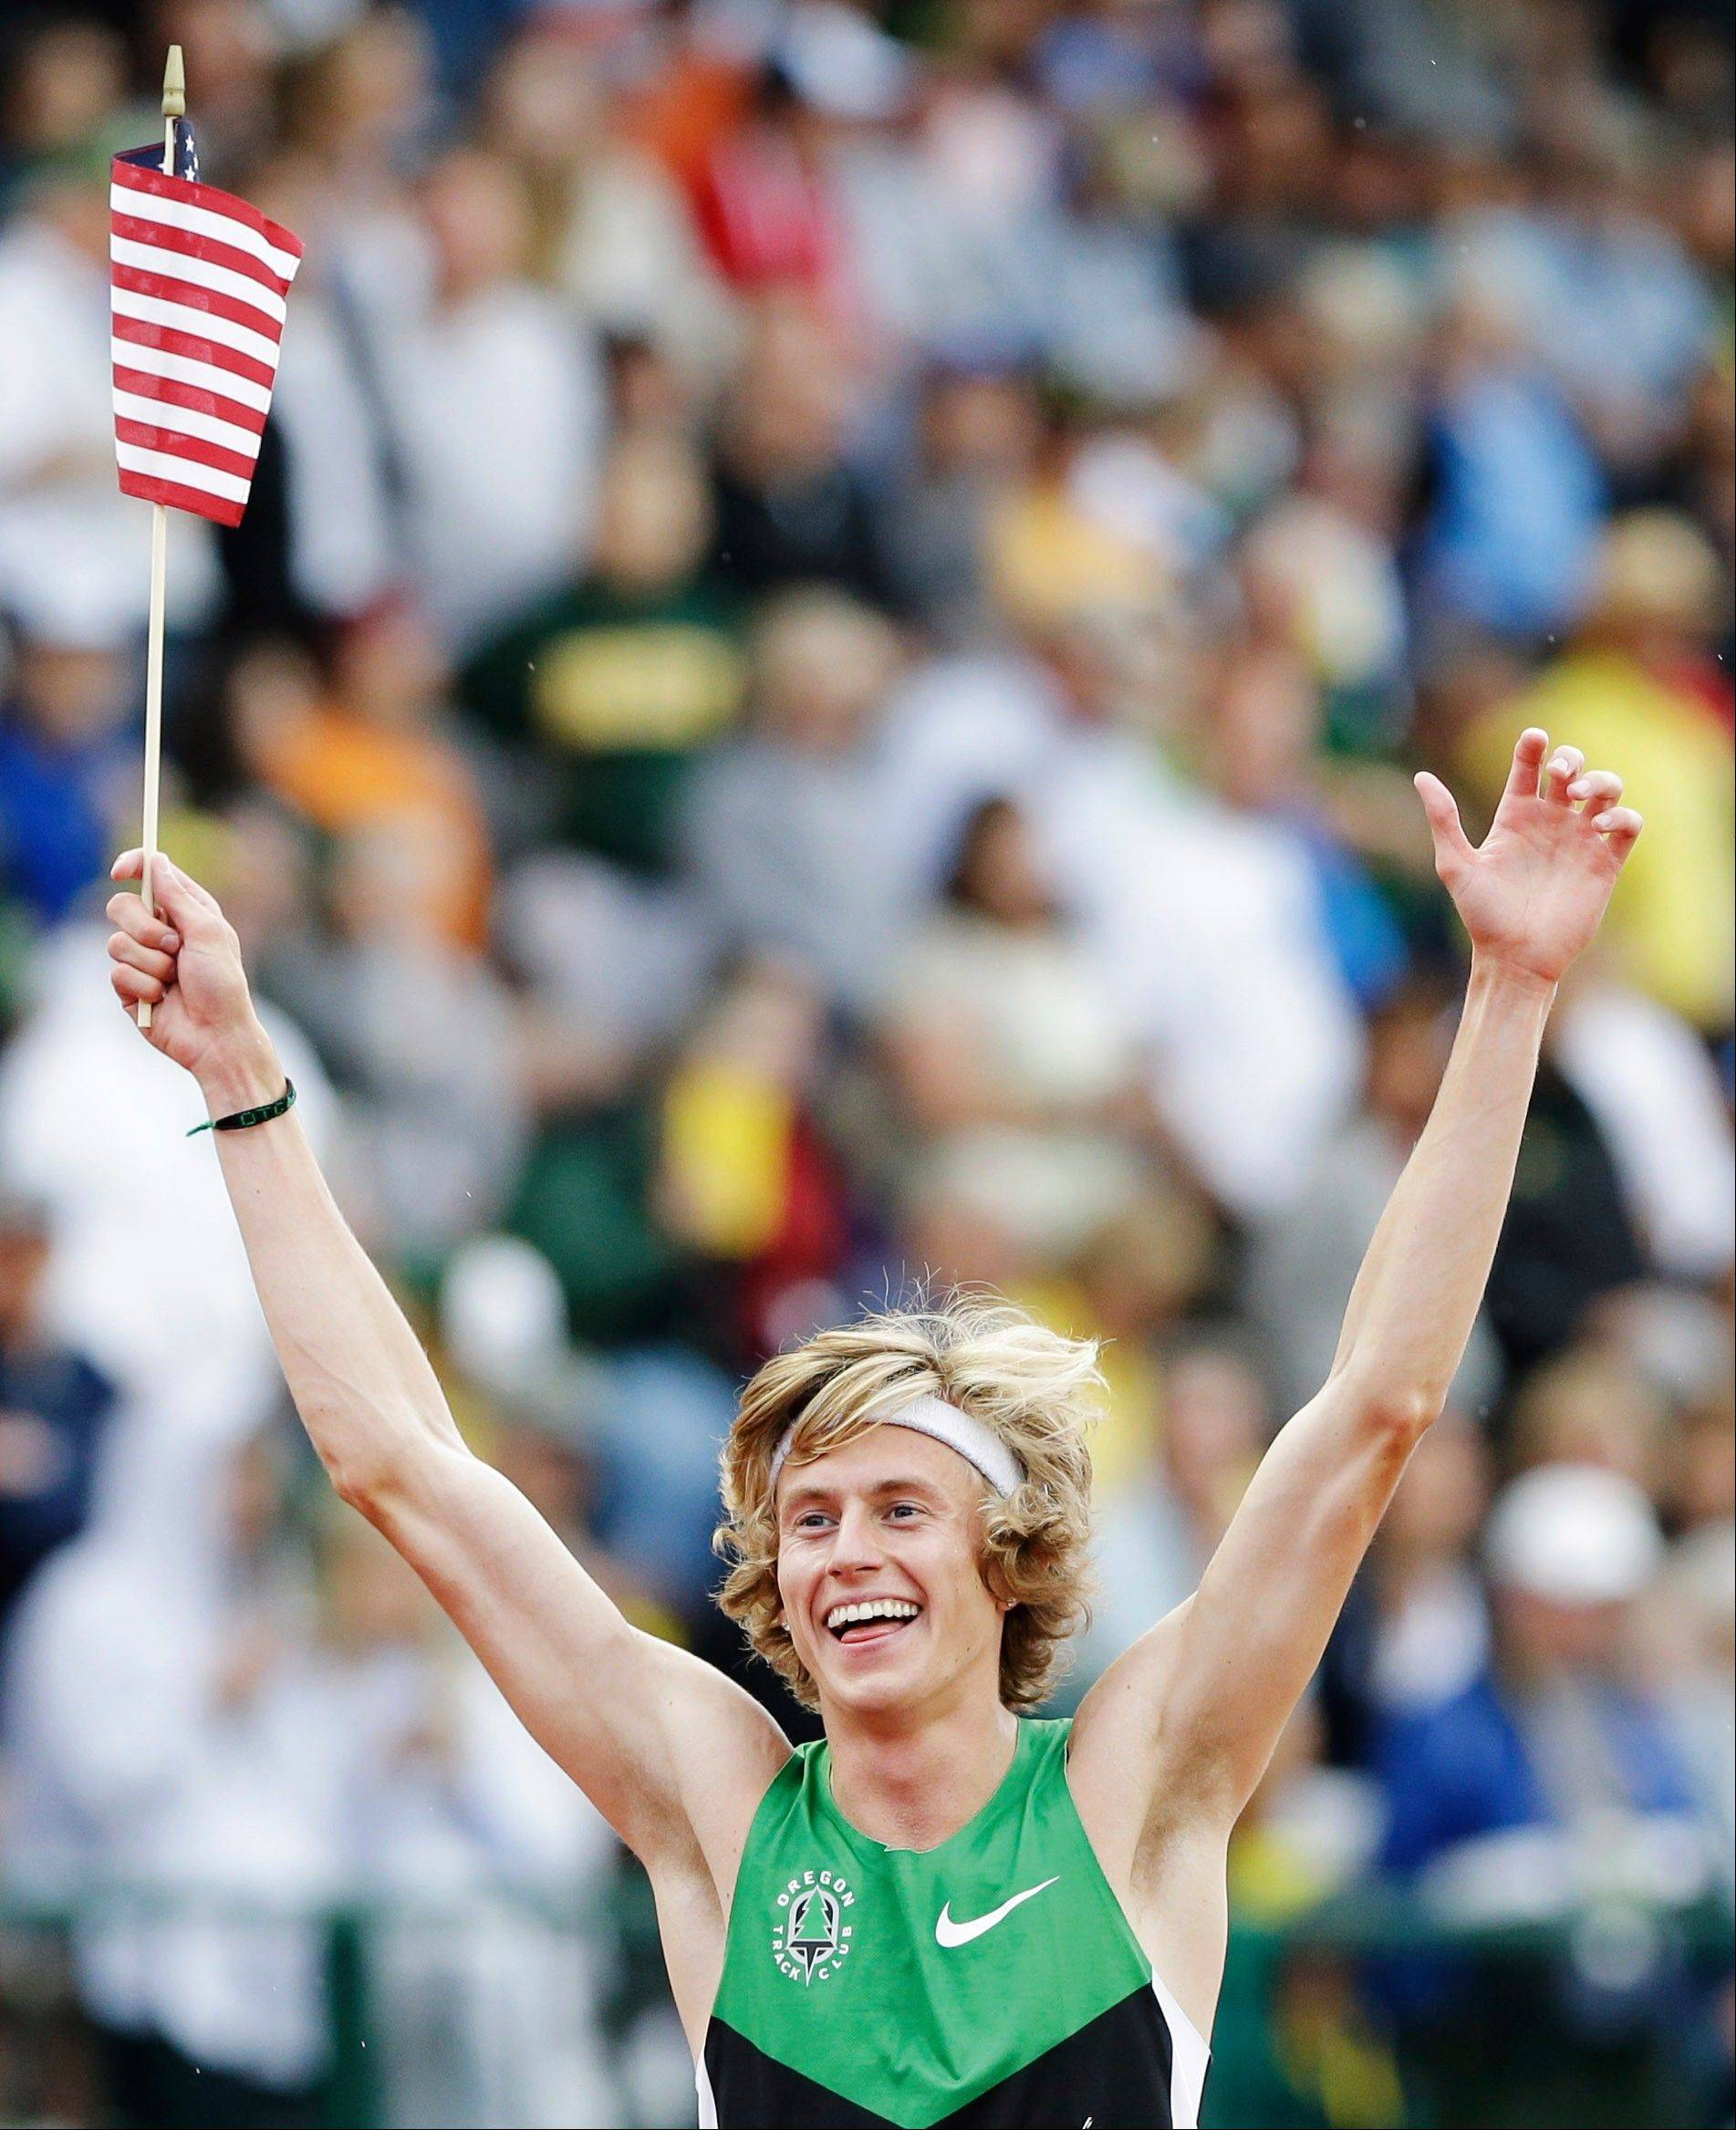 Evan Jager celebrates after winning the men's 3,000-meter steeplechase Thursday at the U.S. Olympic Track and Field Trials in Eugene, Ore.